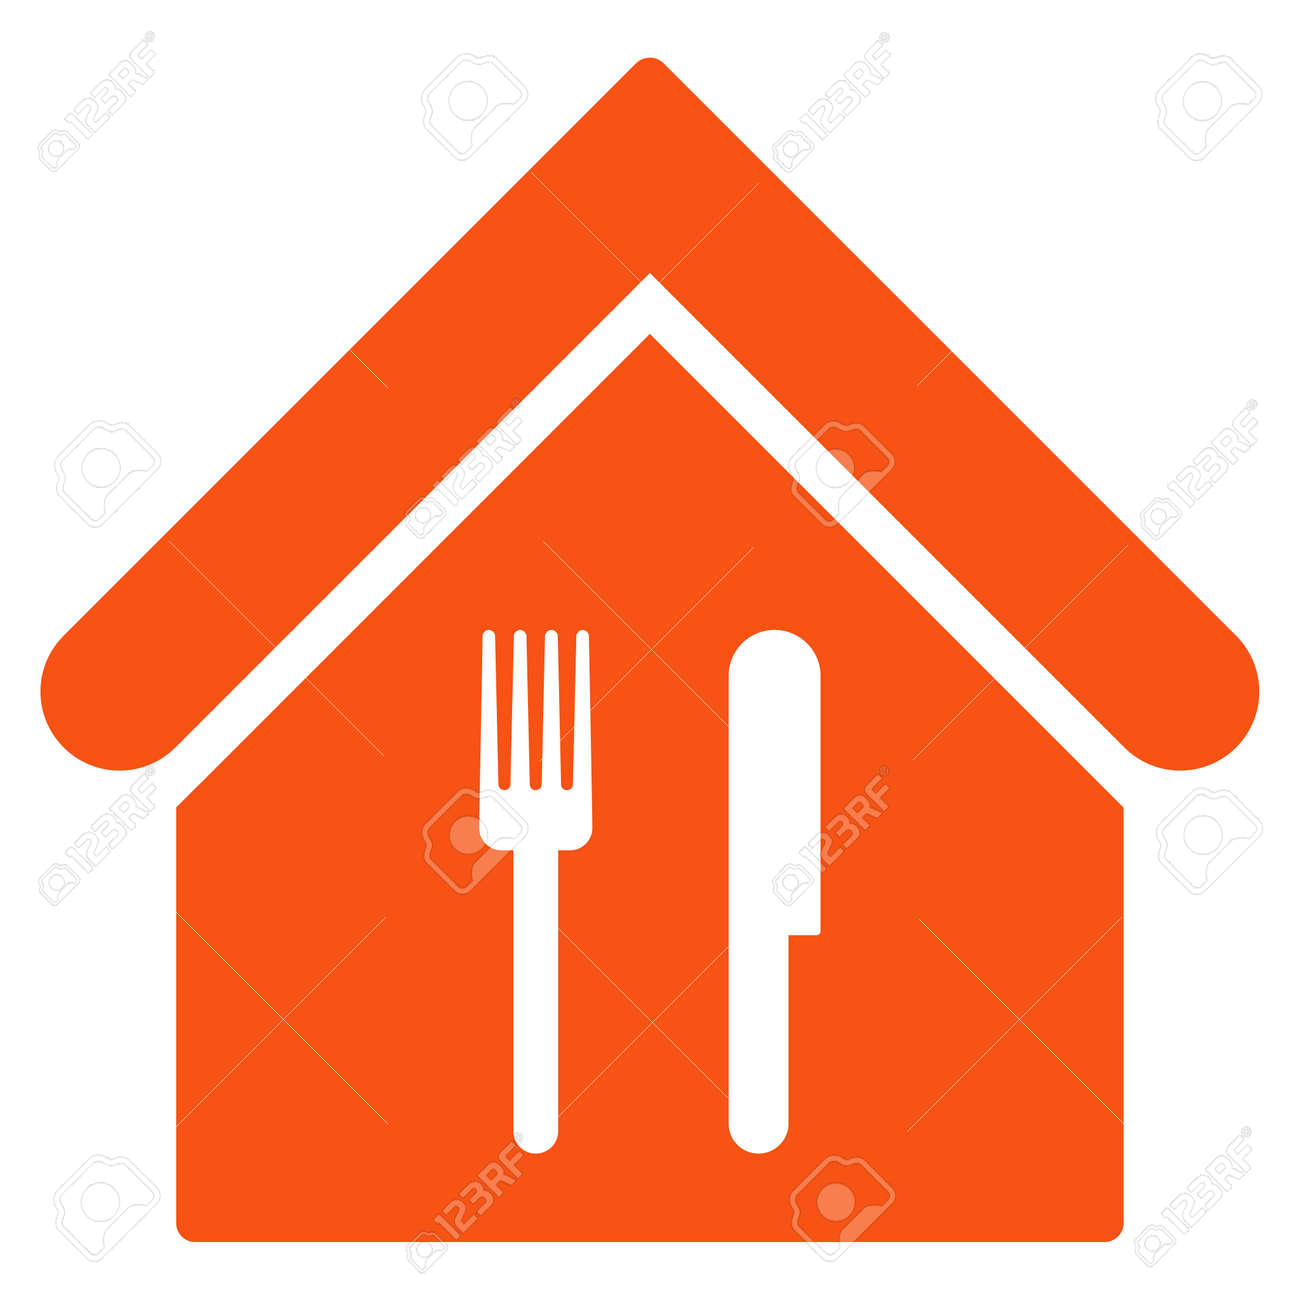 Restaurant Icon Glyph Style Is Flat Iconic Symbol Orange Color Stock Photo Picture And Royalty Free Image Image 64666349